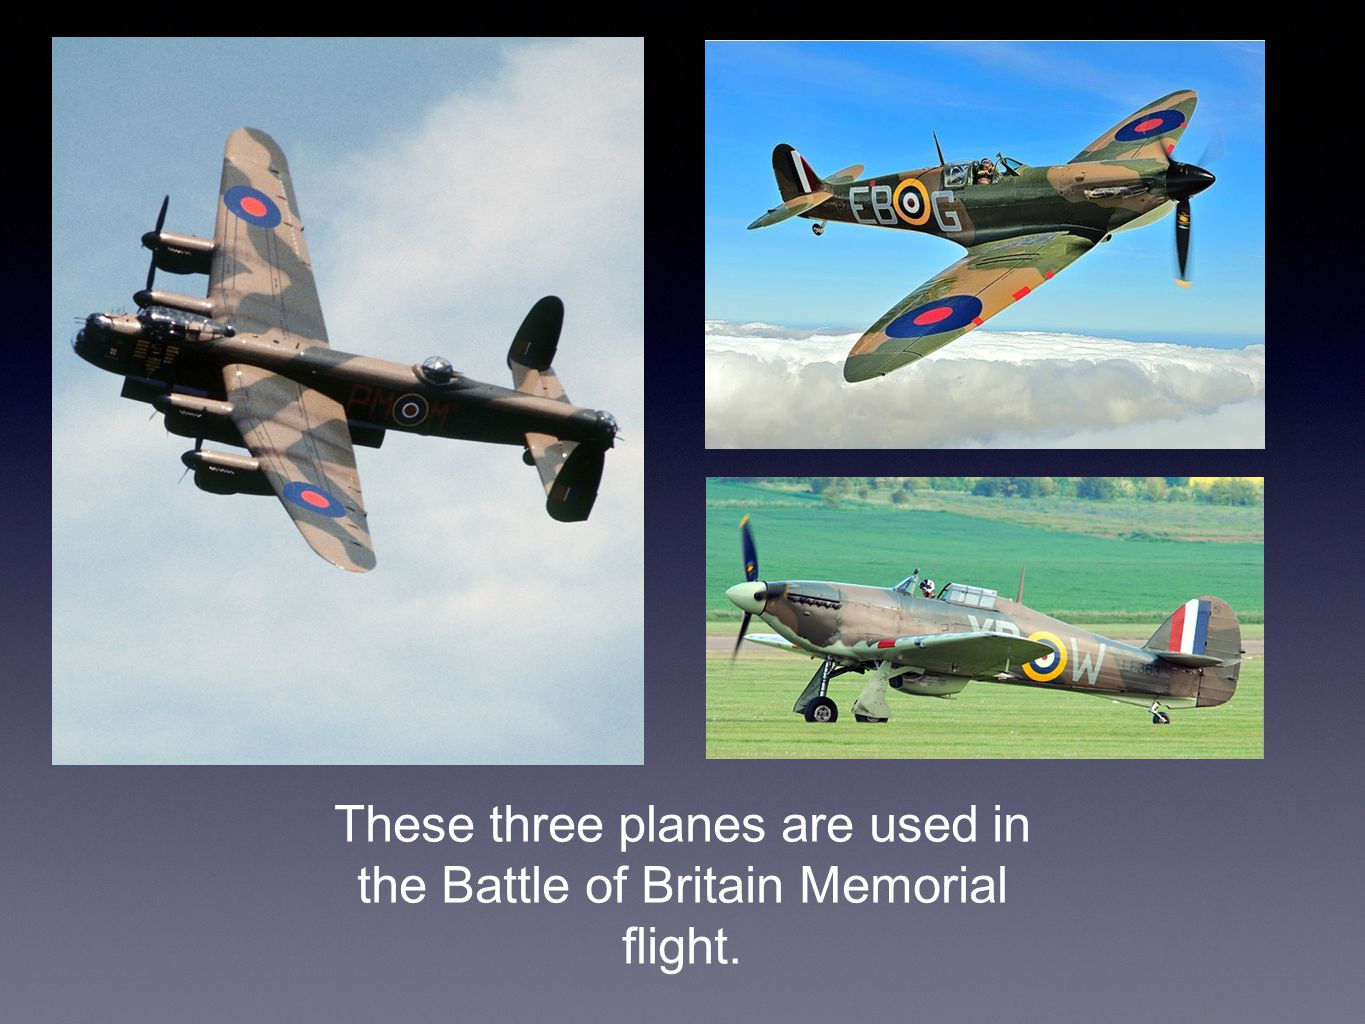 These three planes are used in the Battle of Britain Memorial flight.